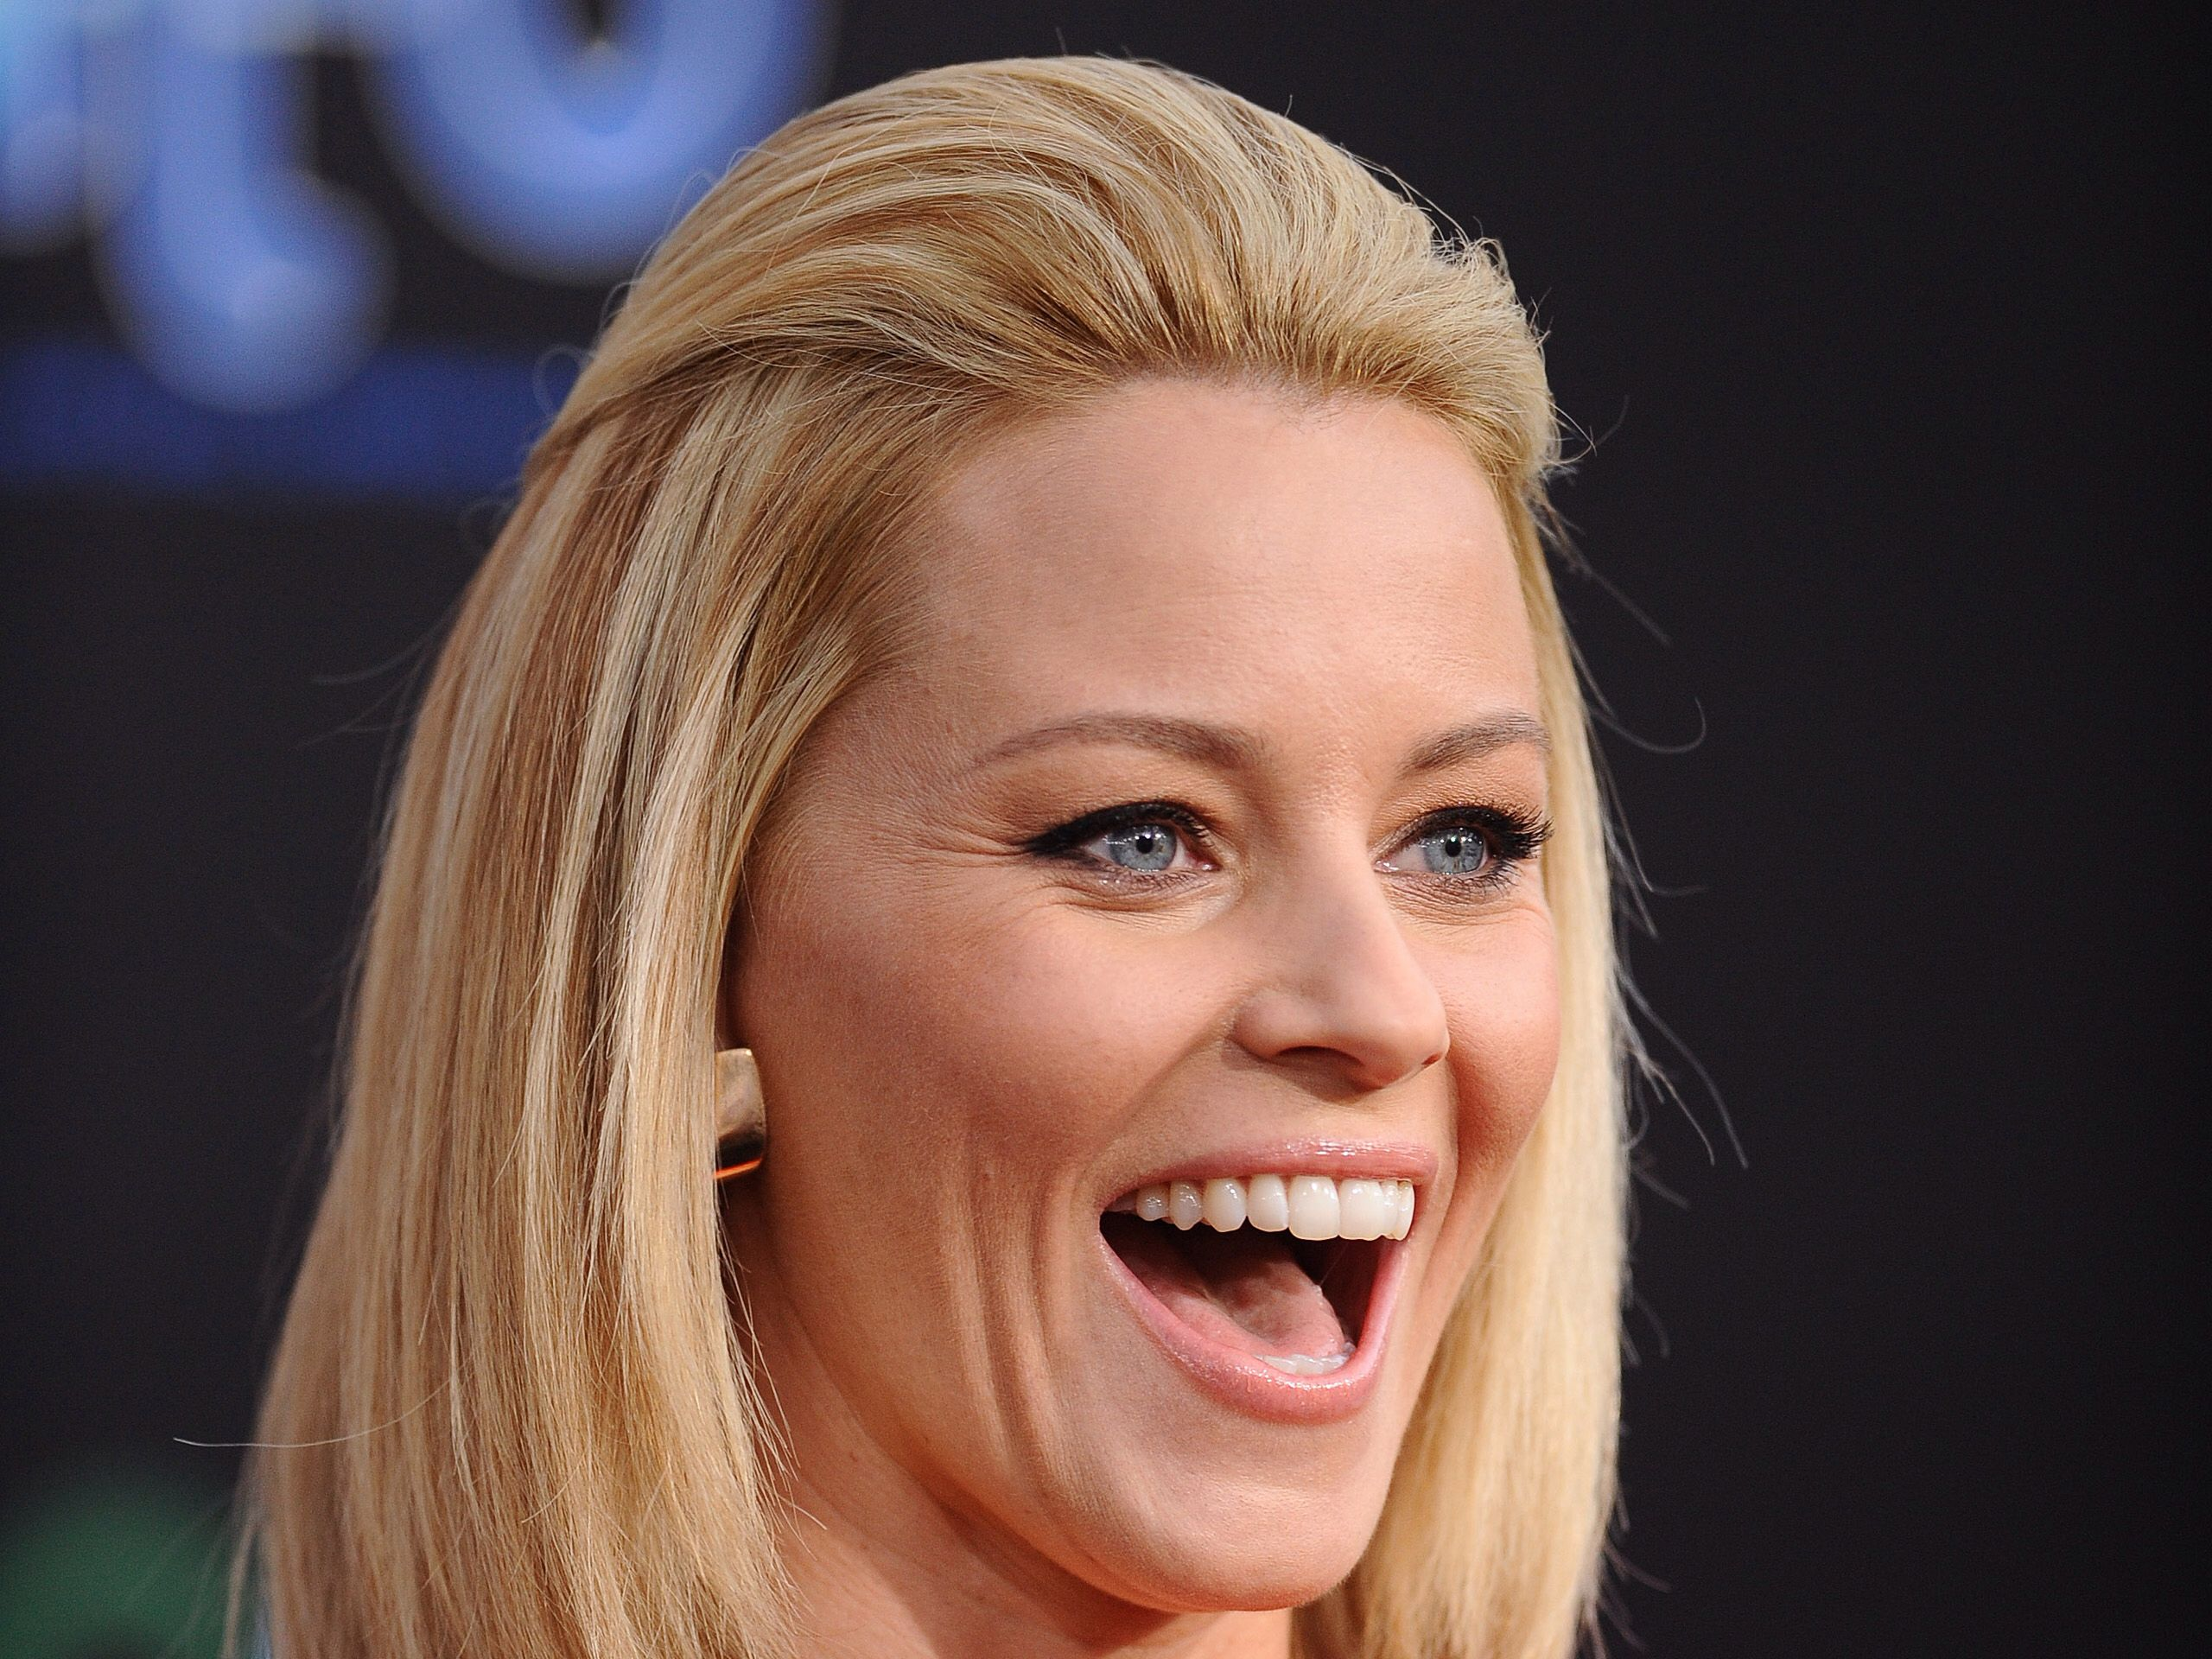 Image from http://offclouds.com/data_images/wallpapers/23/334089-elizabeth-banks.jpg.